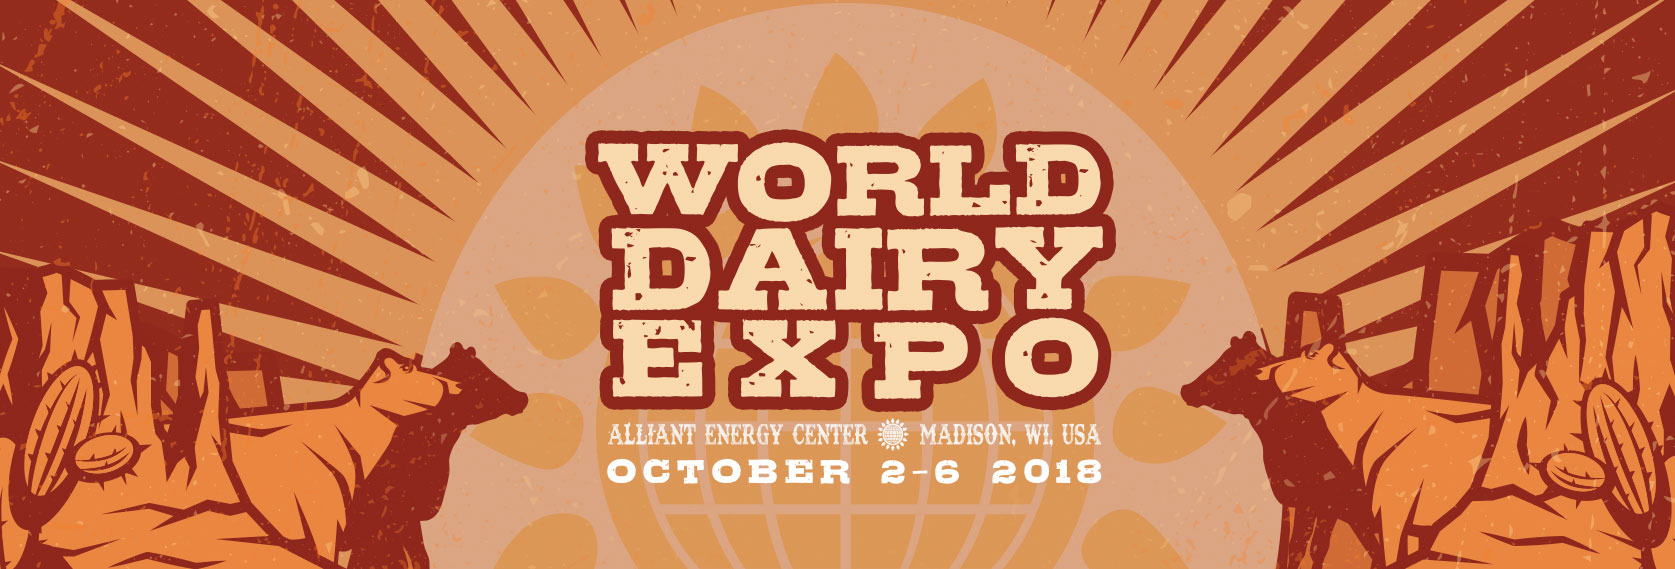 World Dairy Expo - October 3 - 7